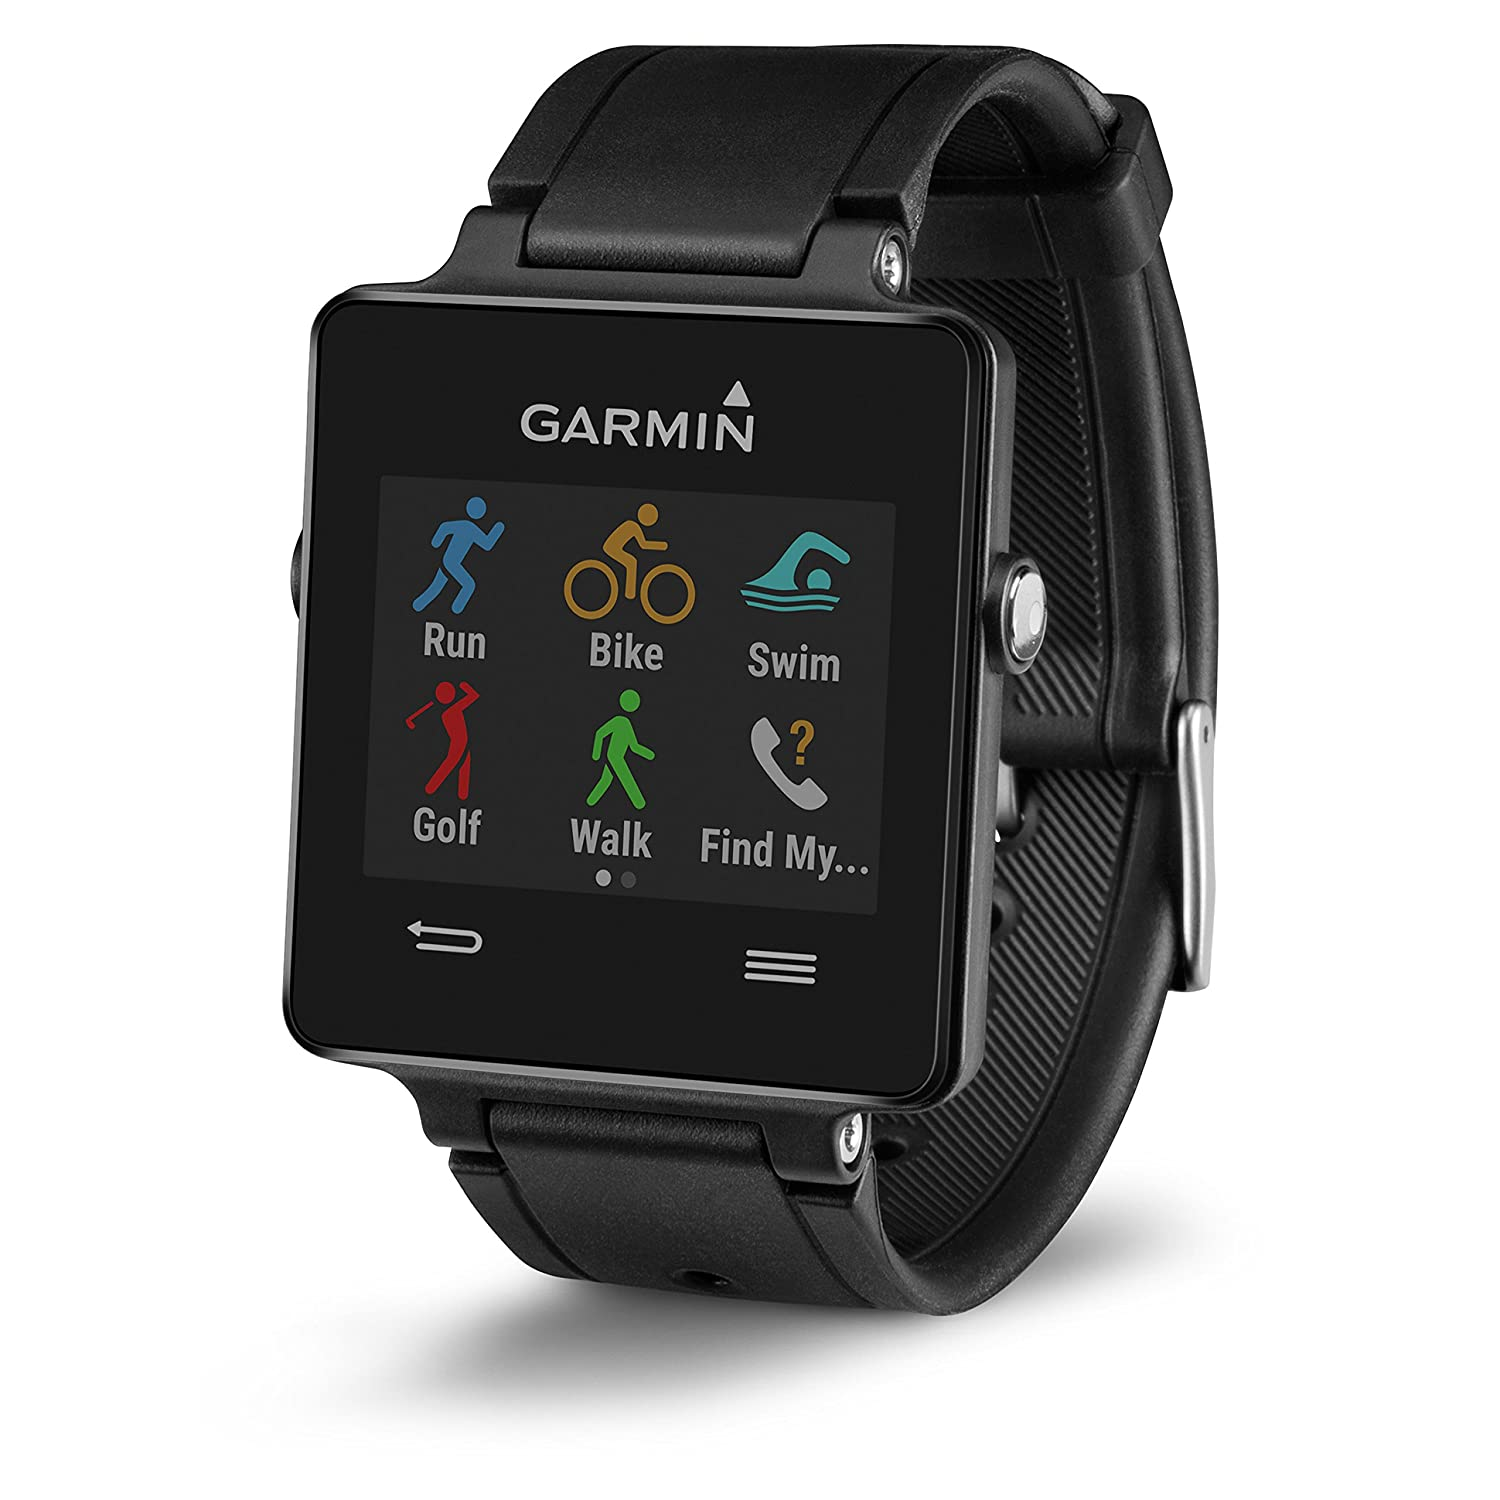 electronics india buy smart merlin price online mobile best wearable c cliq black at phone in watch neotalk watches devices tata